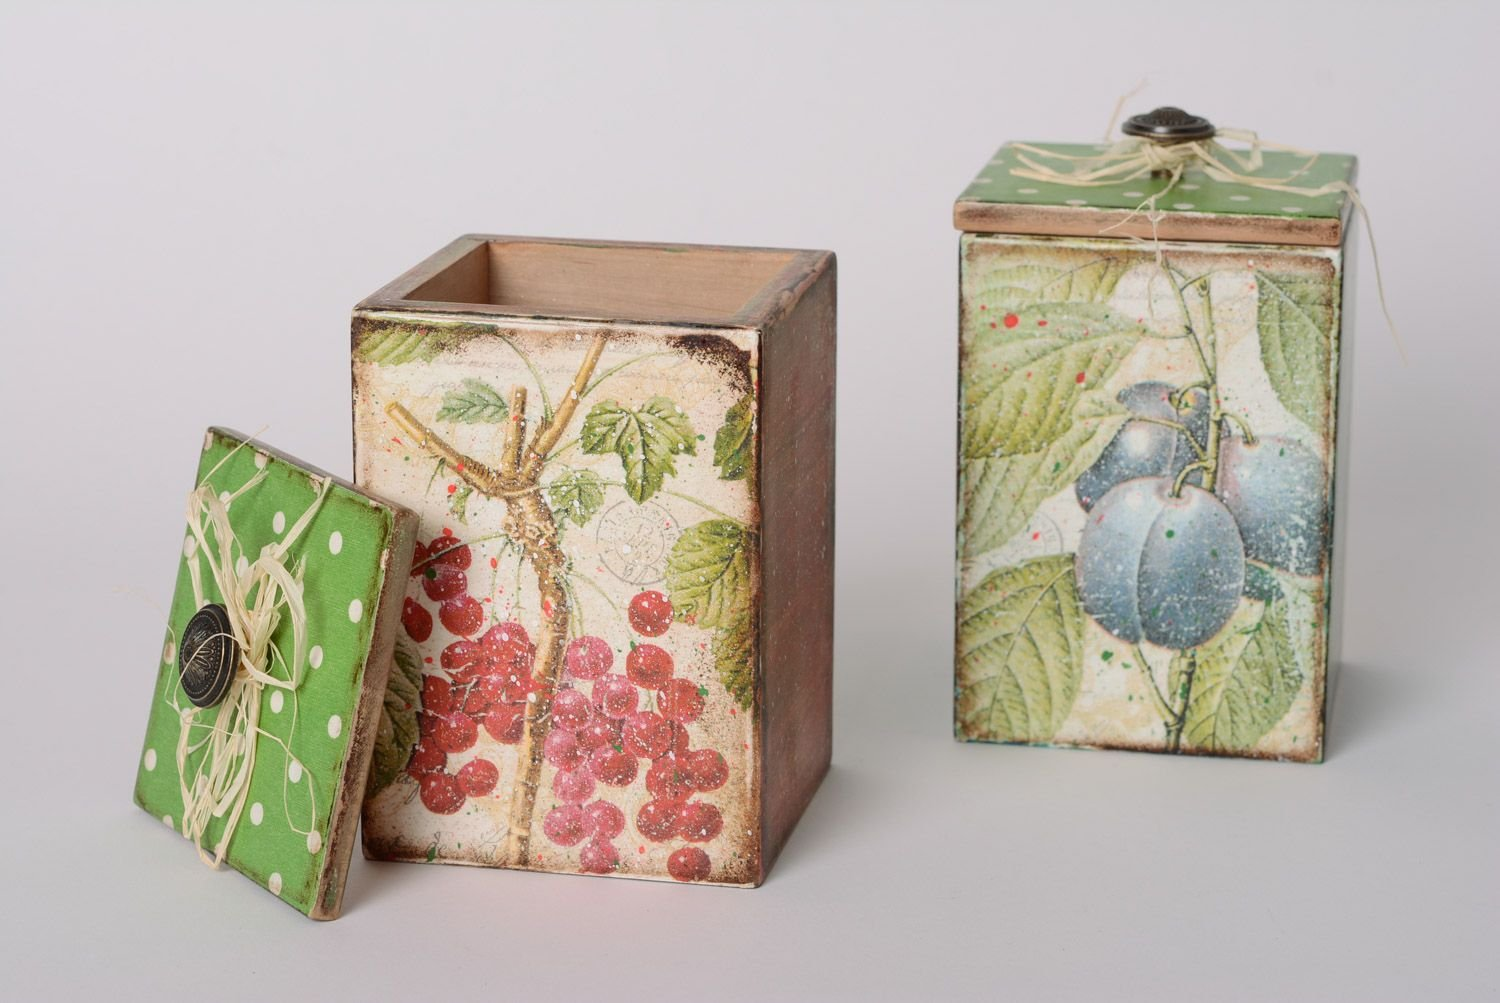 Set Of Handmade Decoupage Wooden Boxes For Bulk Products 2 Pieces by MadeHeart | Buy handmade goods